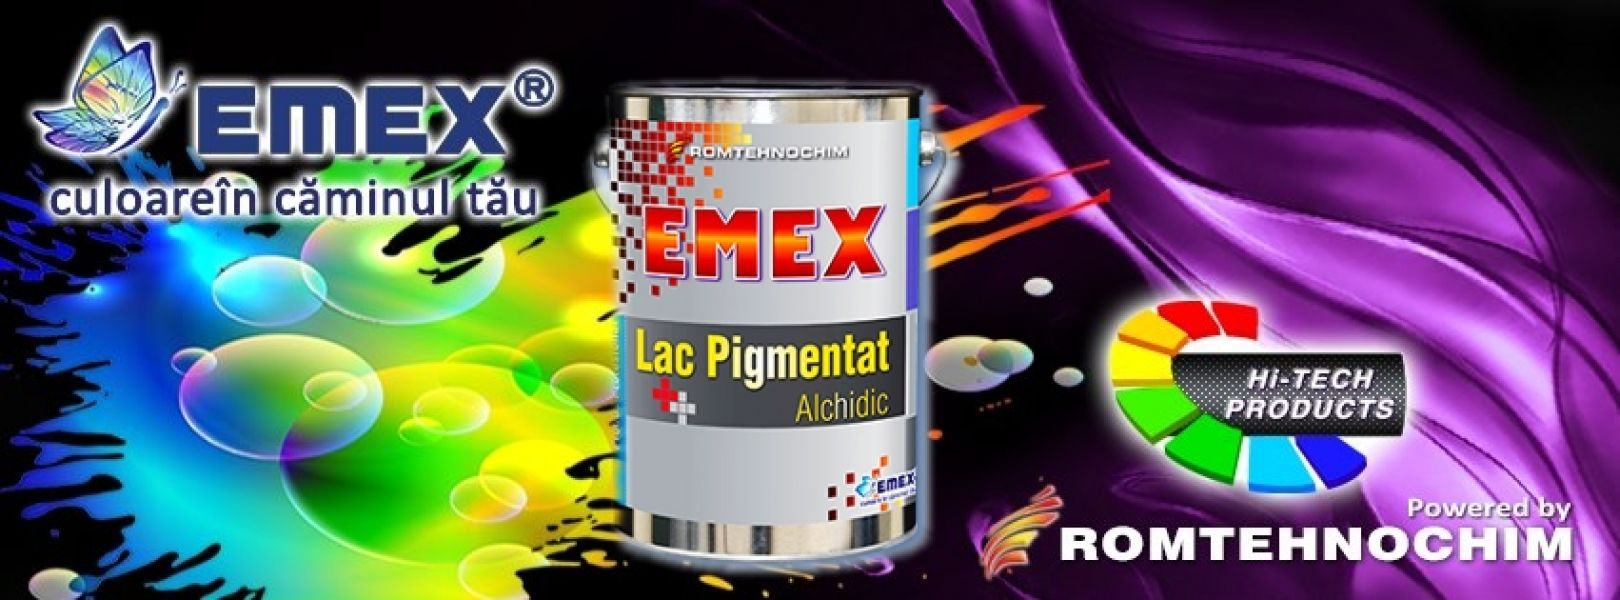 Lac Alchidic Pigmentat Semitransparent EMEX - 15,20 Ron/Kg